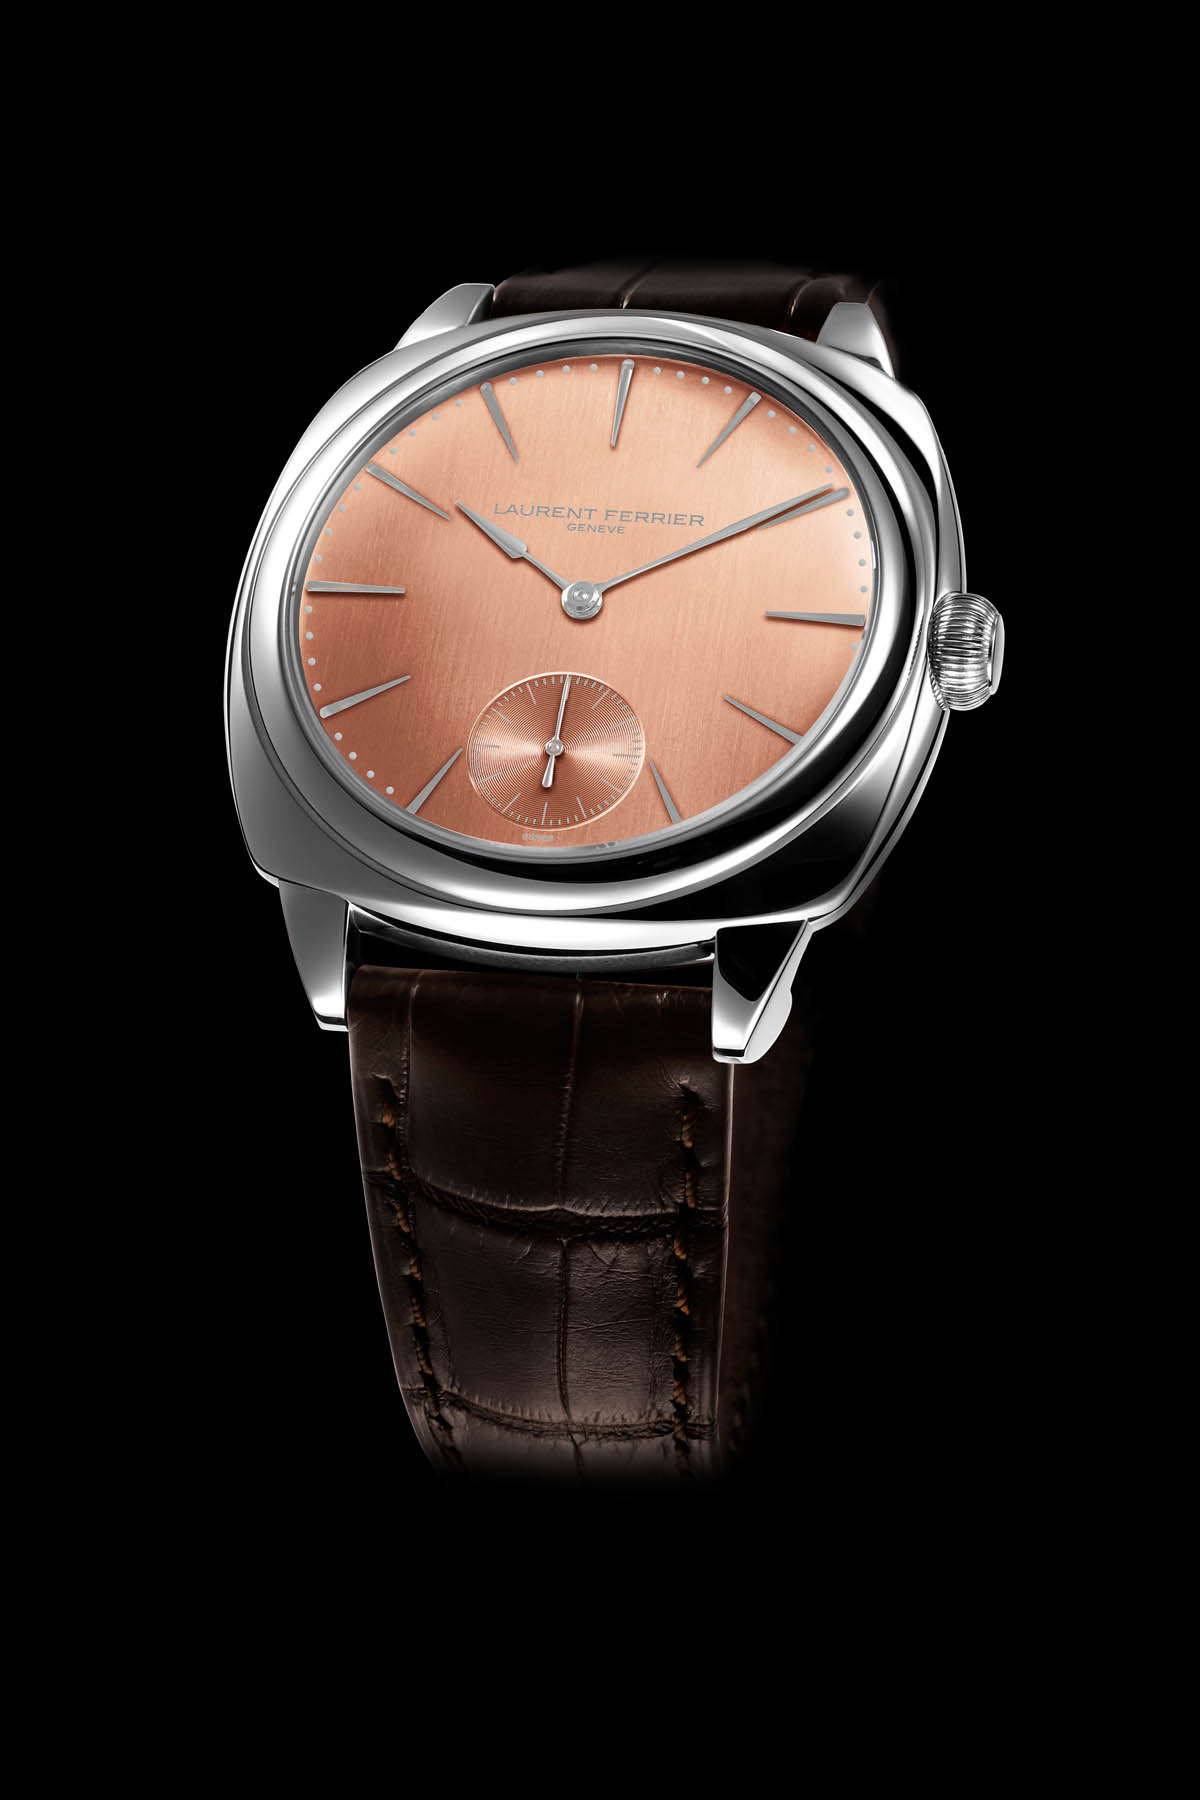 Laurent Ferrier Galet Square Autumn soldat